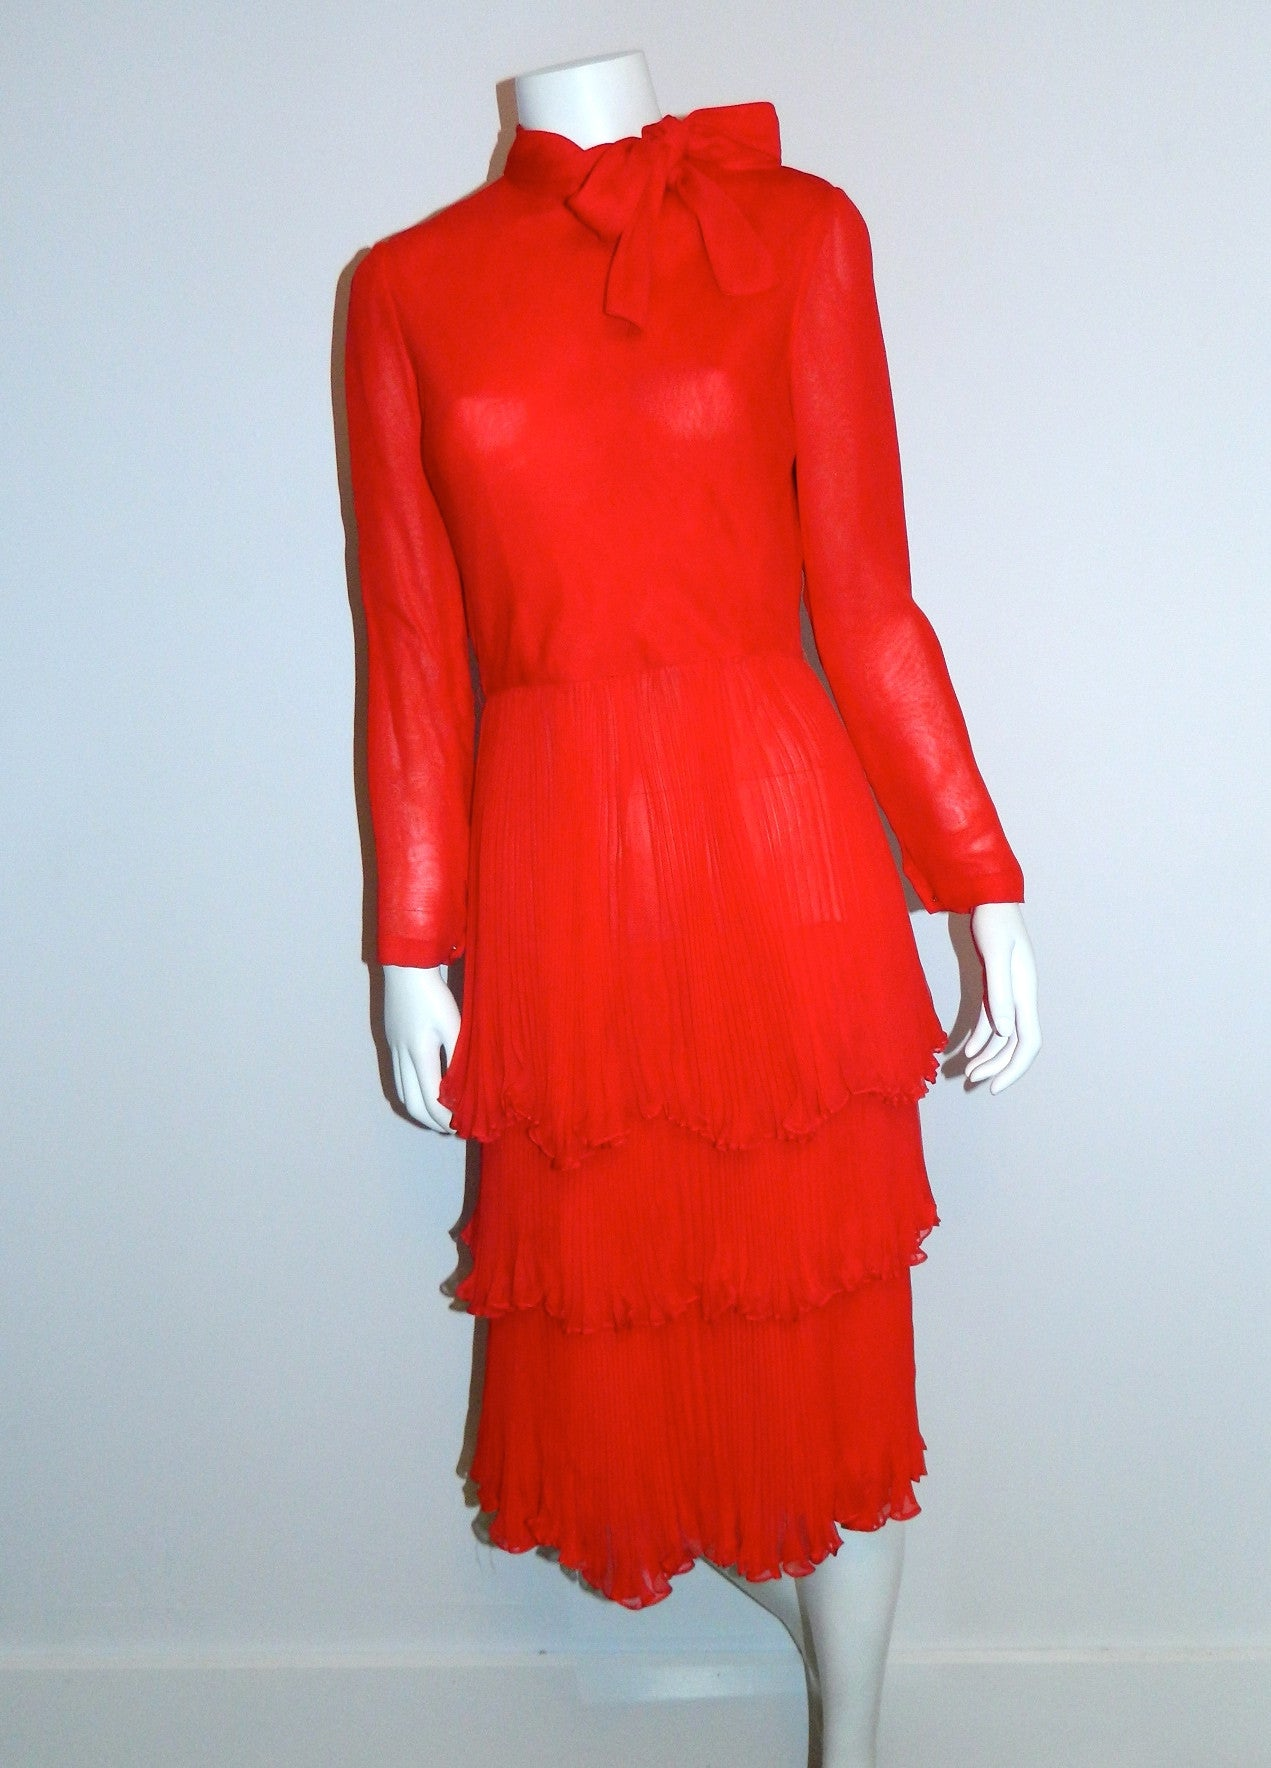 red silk chiffon John Anthony dress / 1970s vintage / tiered skirt / bow neck XS - S